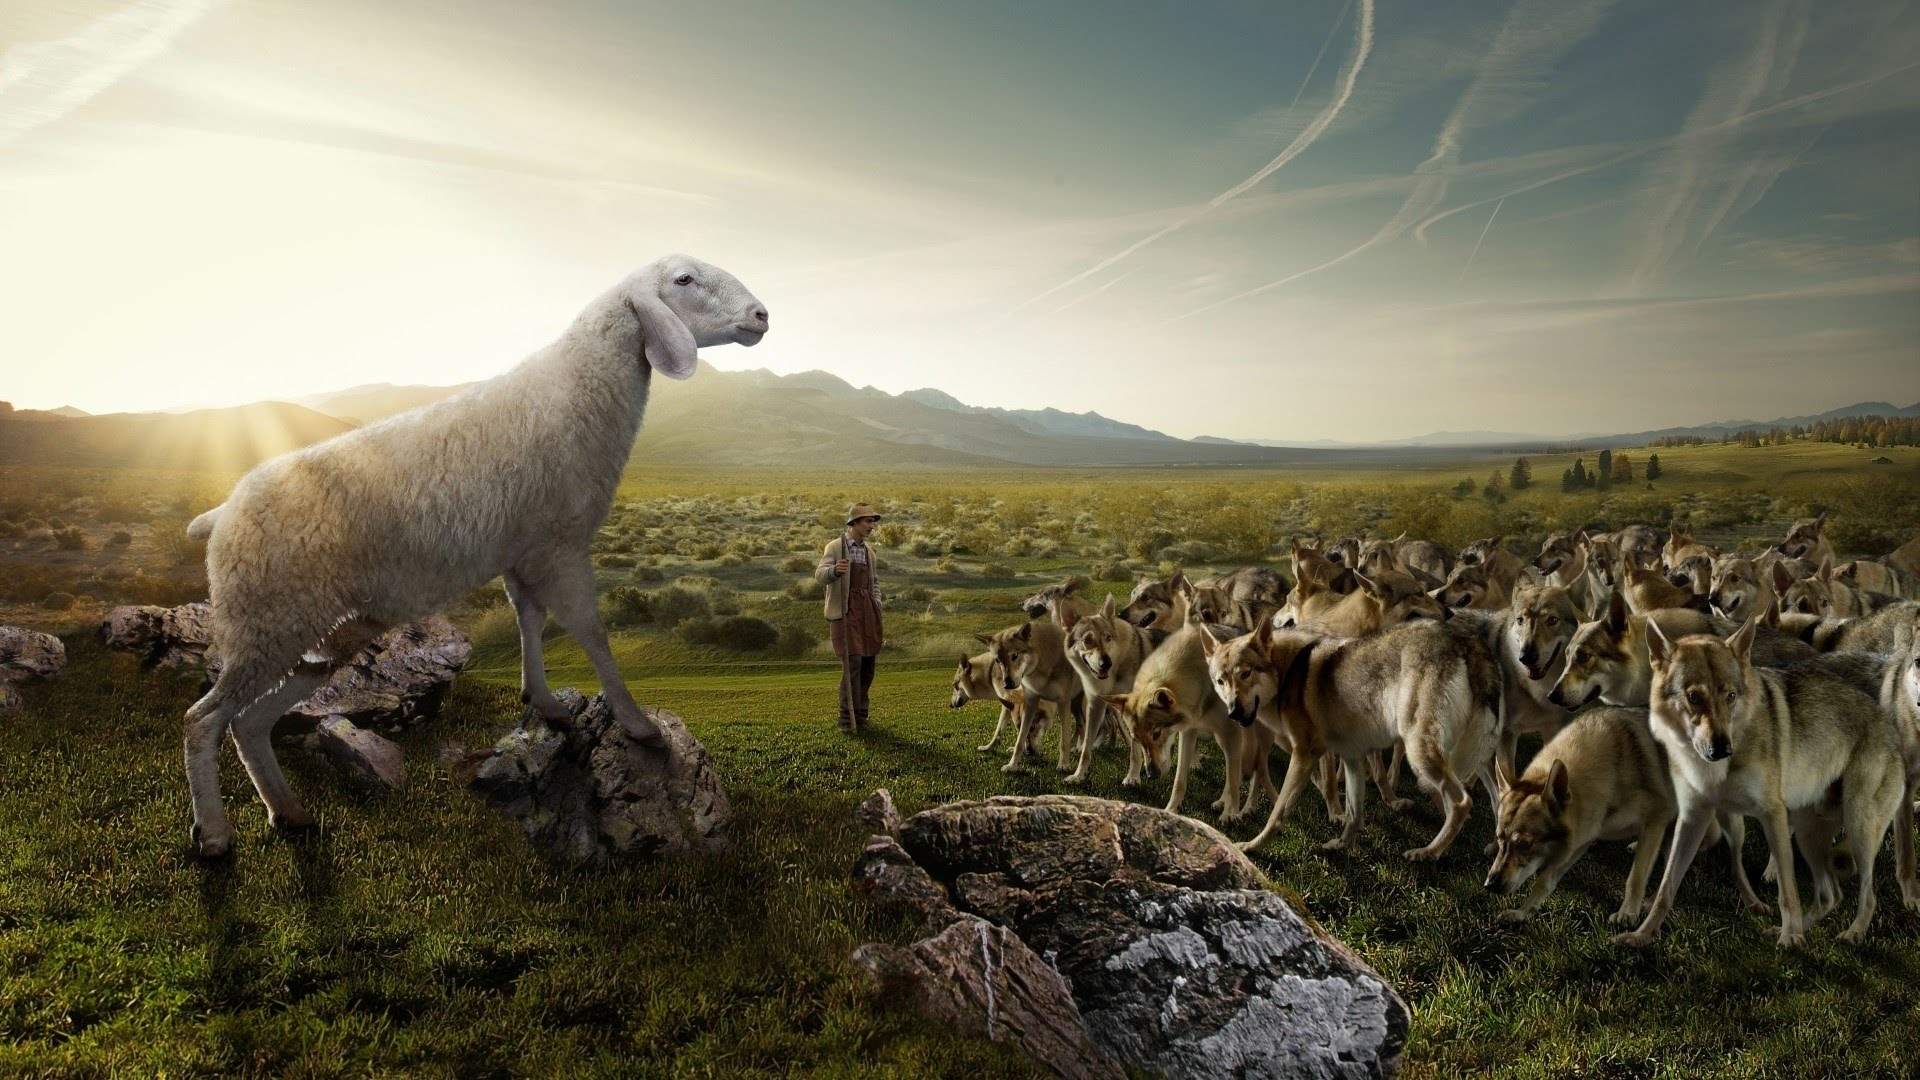 Sheep Amidst Wolves: Maintaining Gentleness